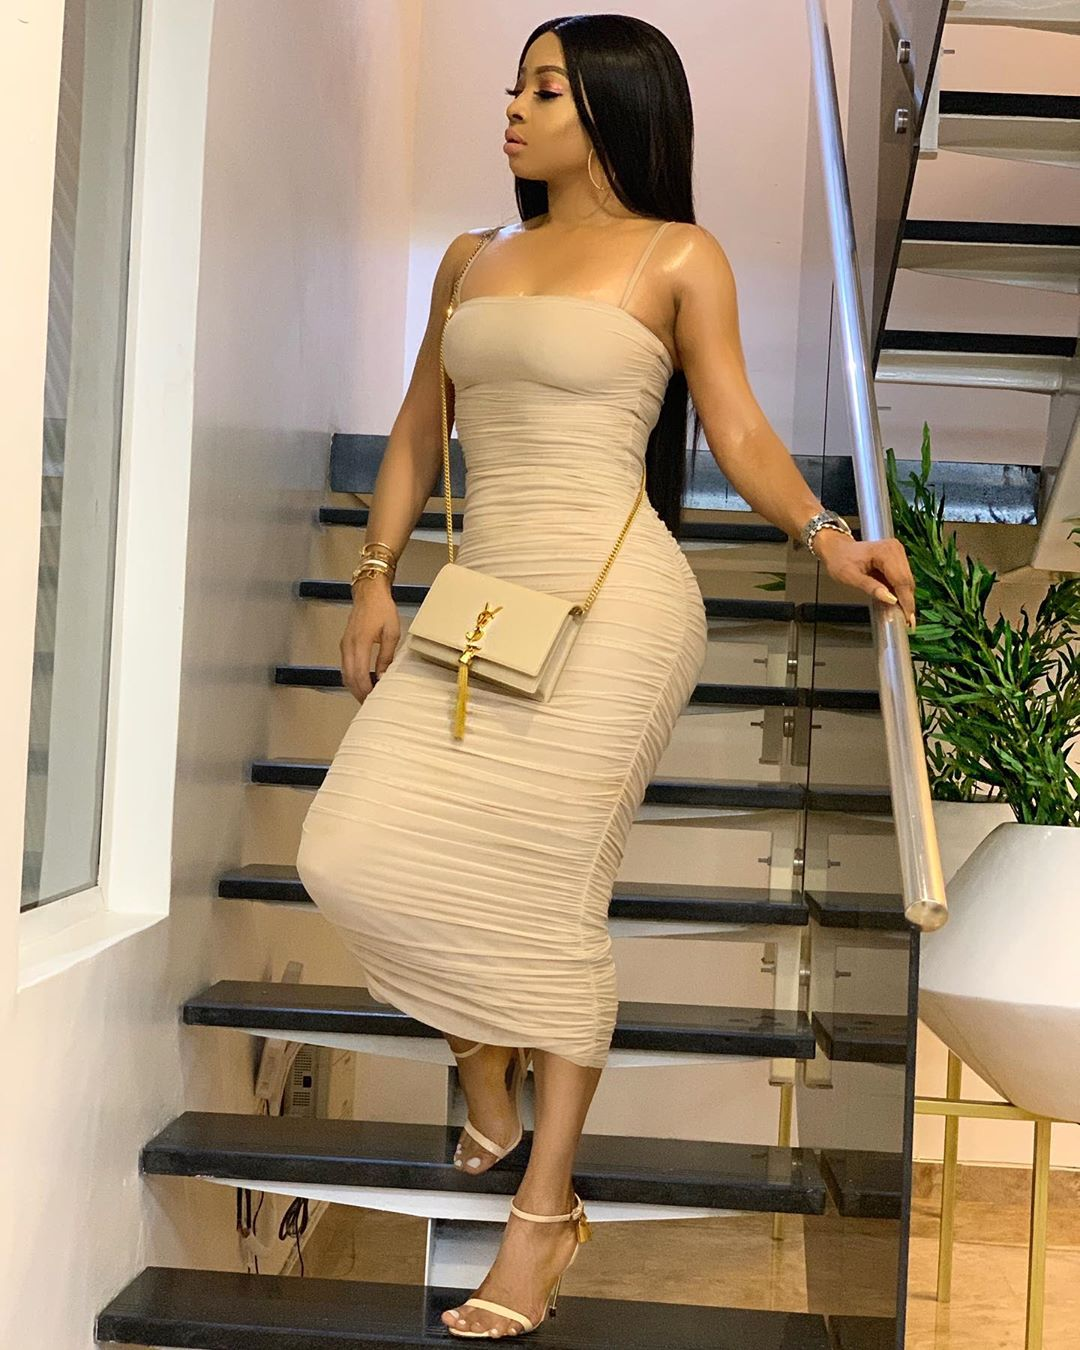 1 2 - Toke Makinwa Shares Her Nude Picture With Fans